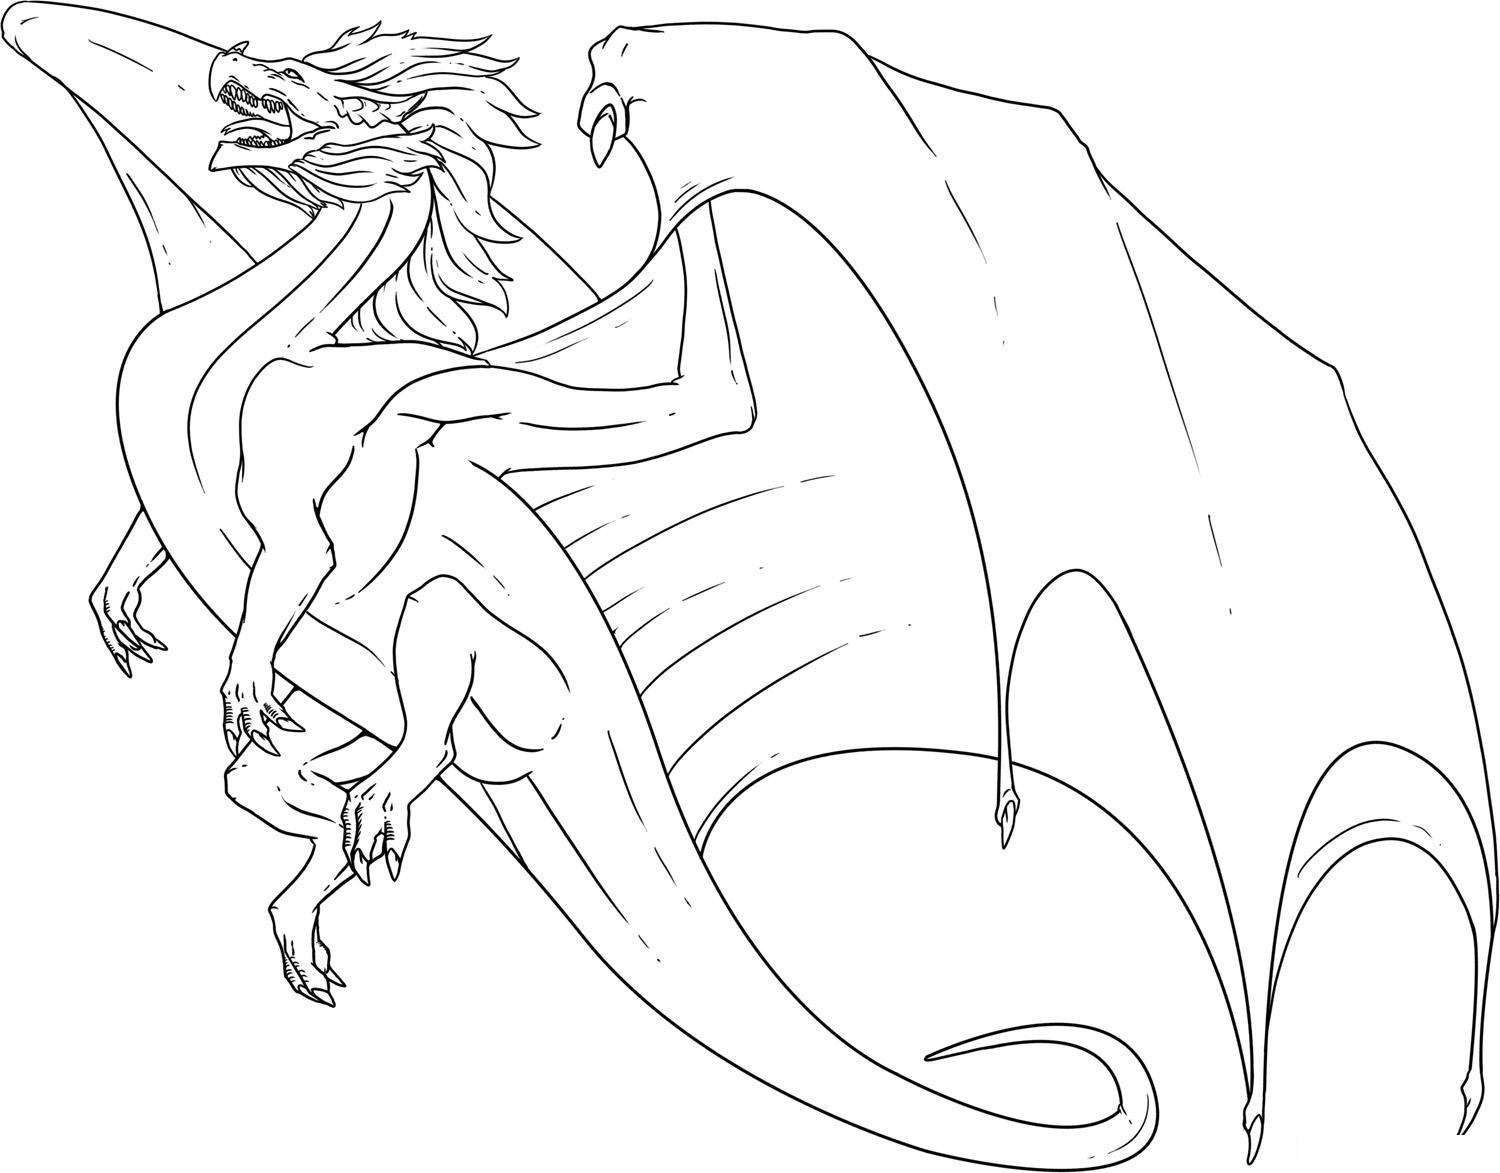 ninjago dragon coloring pages - Printable Dragon Coloring Pages